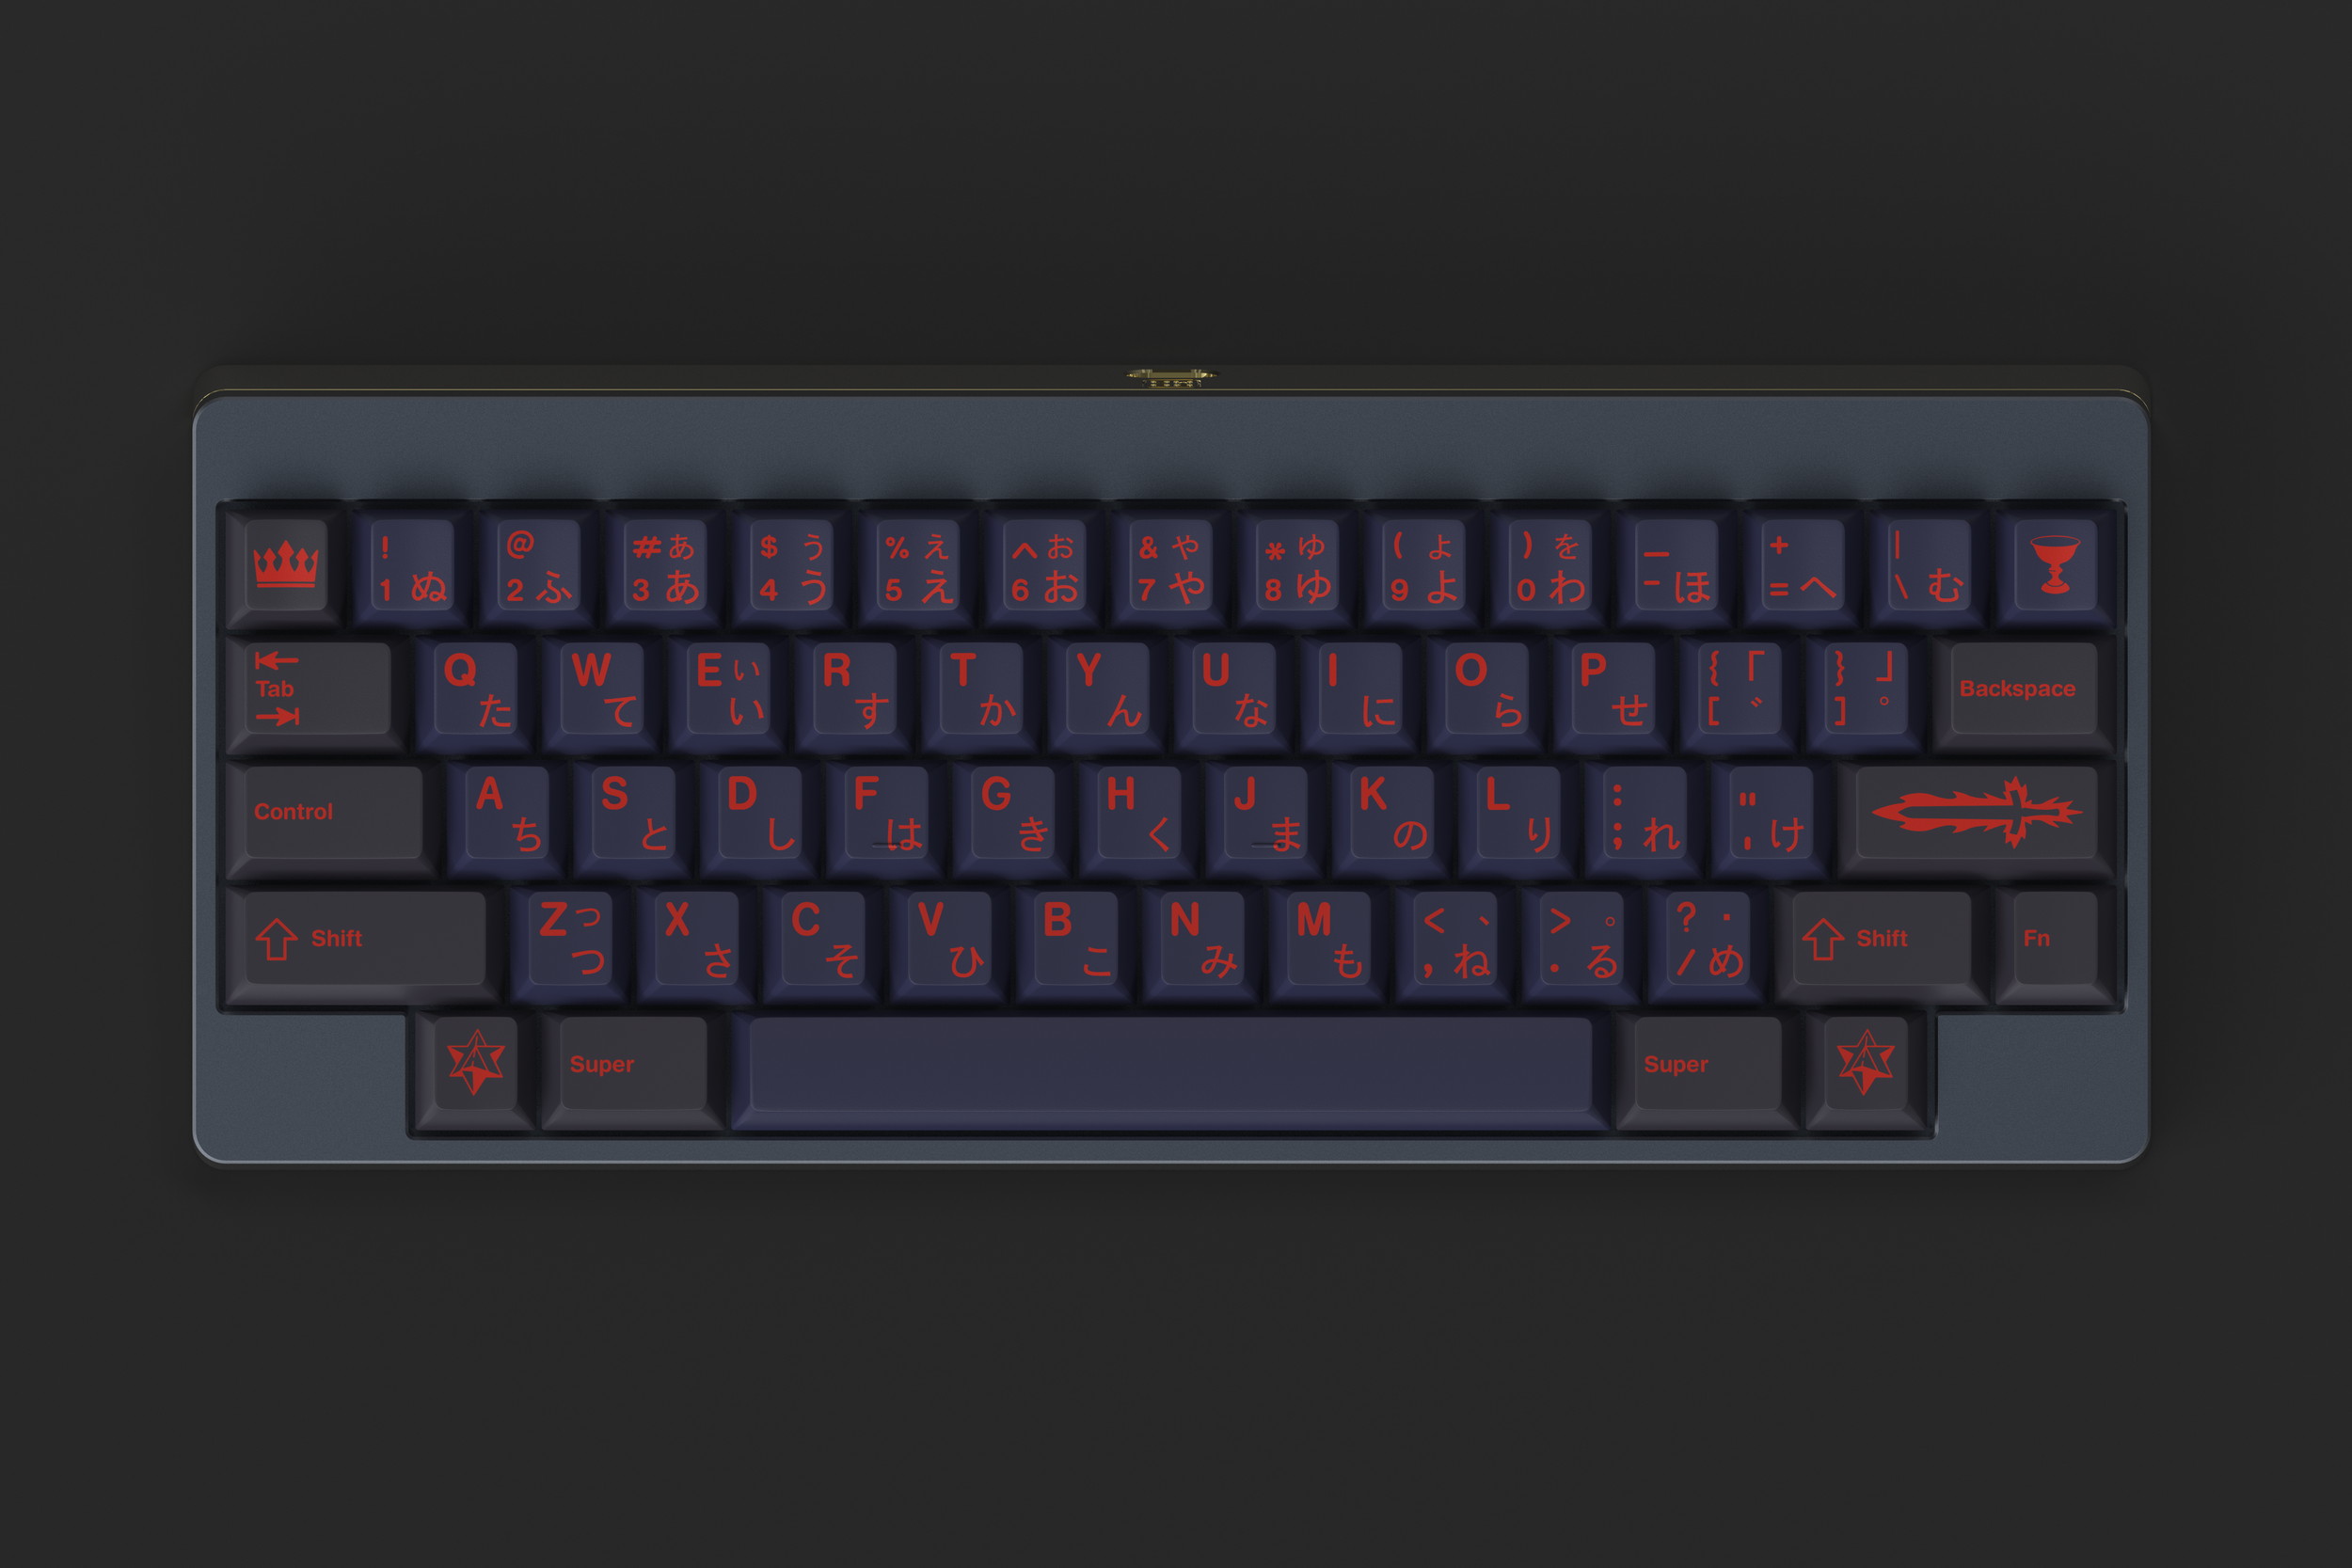 gmk_alter_keyboard_m60a_ortho_top.png